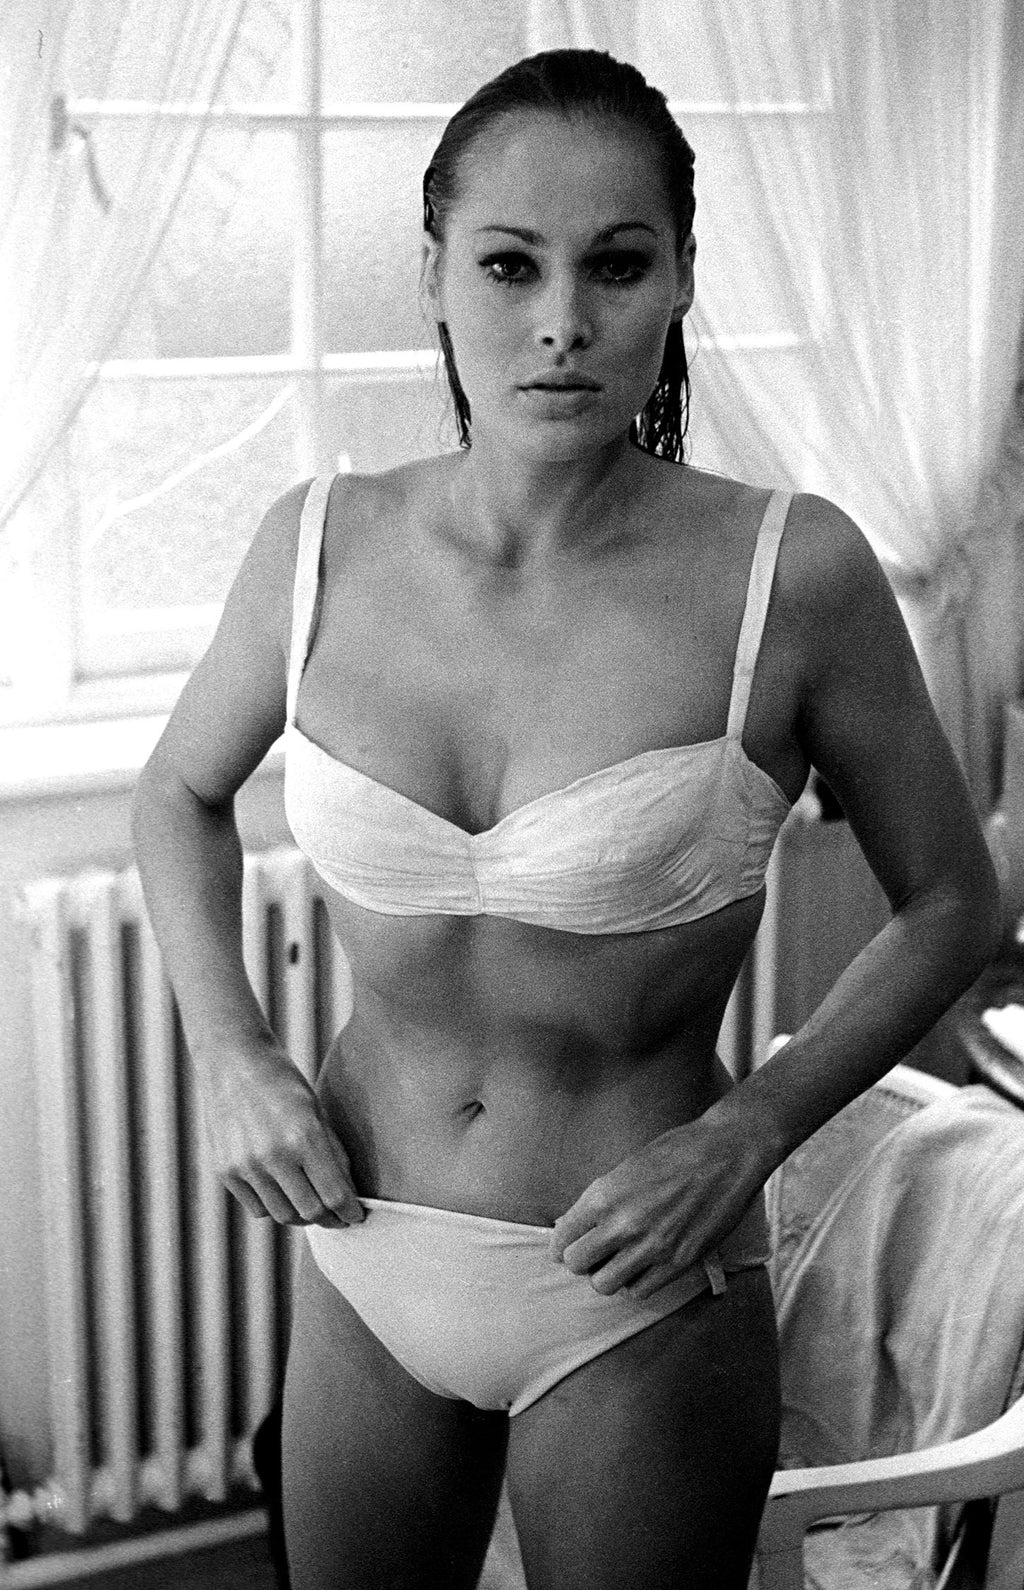 Ursula Andress. London, England. 1962.